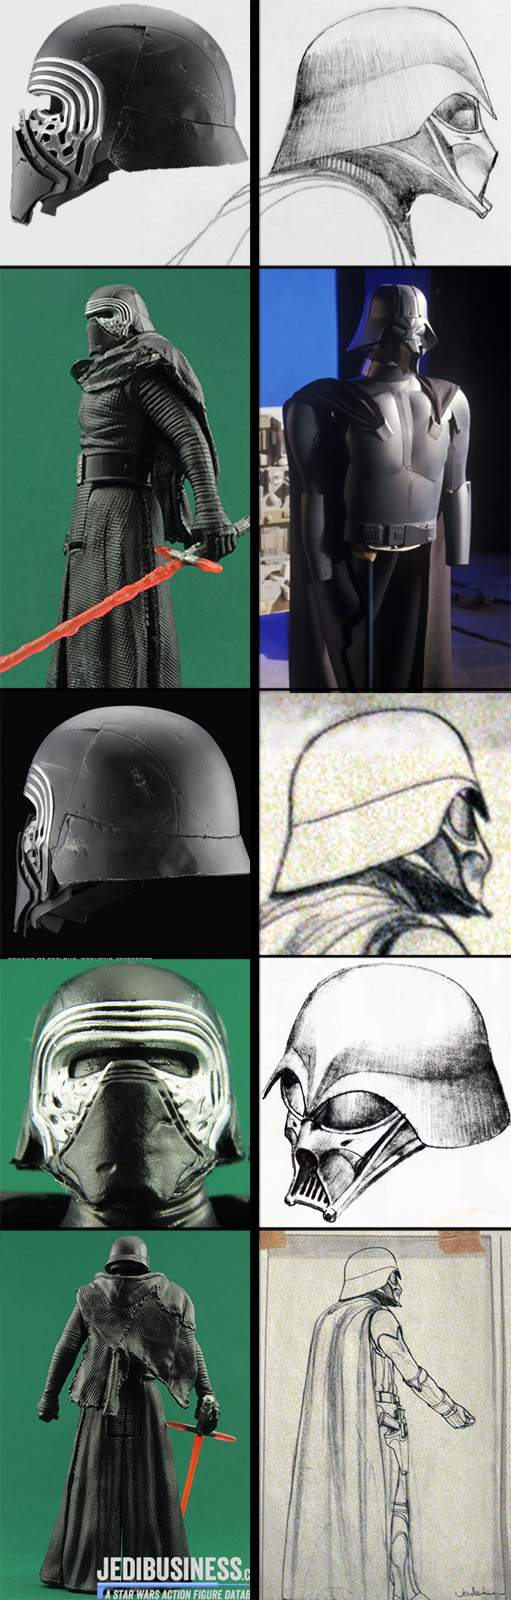 Force Awakens Kylo Ren Darth Ralph McQuarrie John Dijkstra Vader Concepts